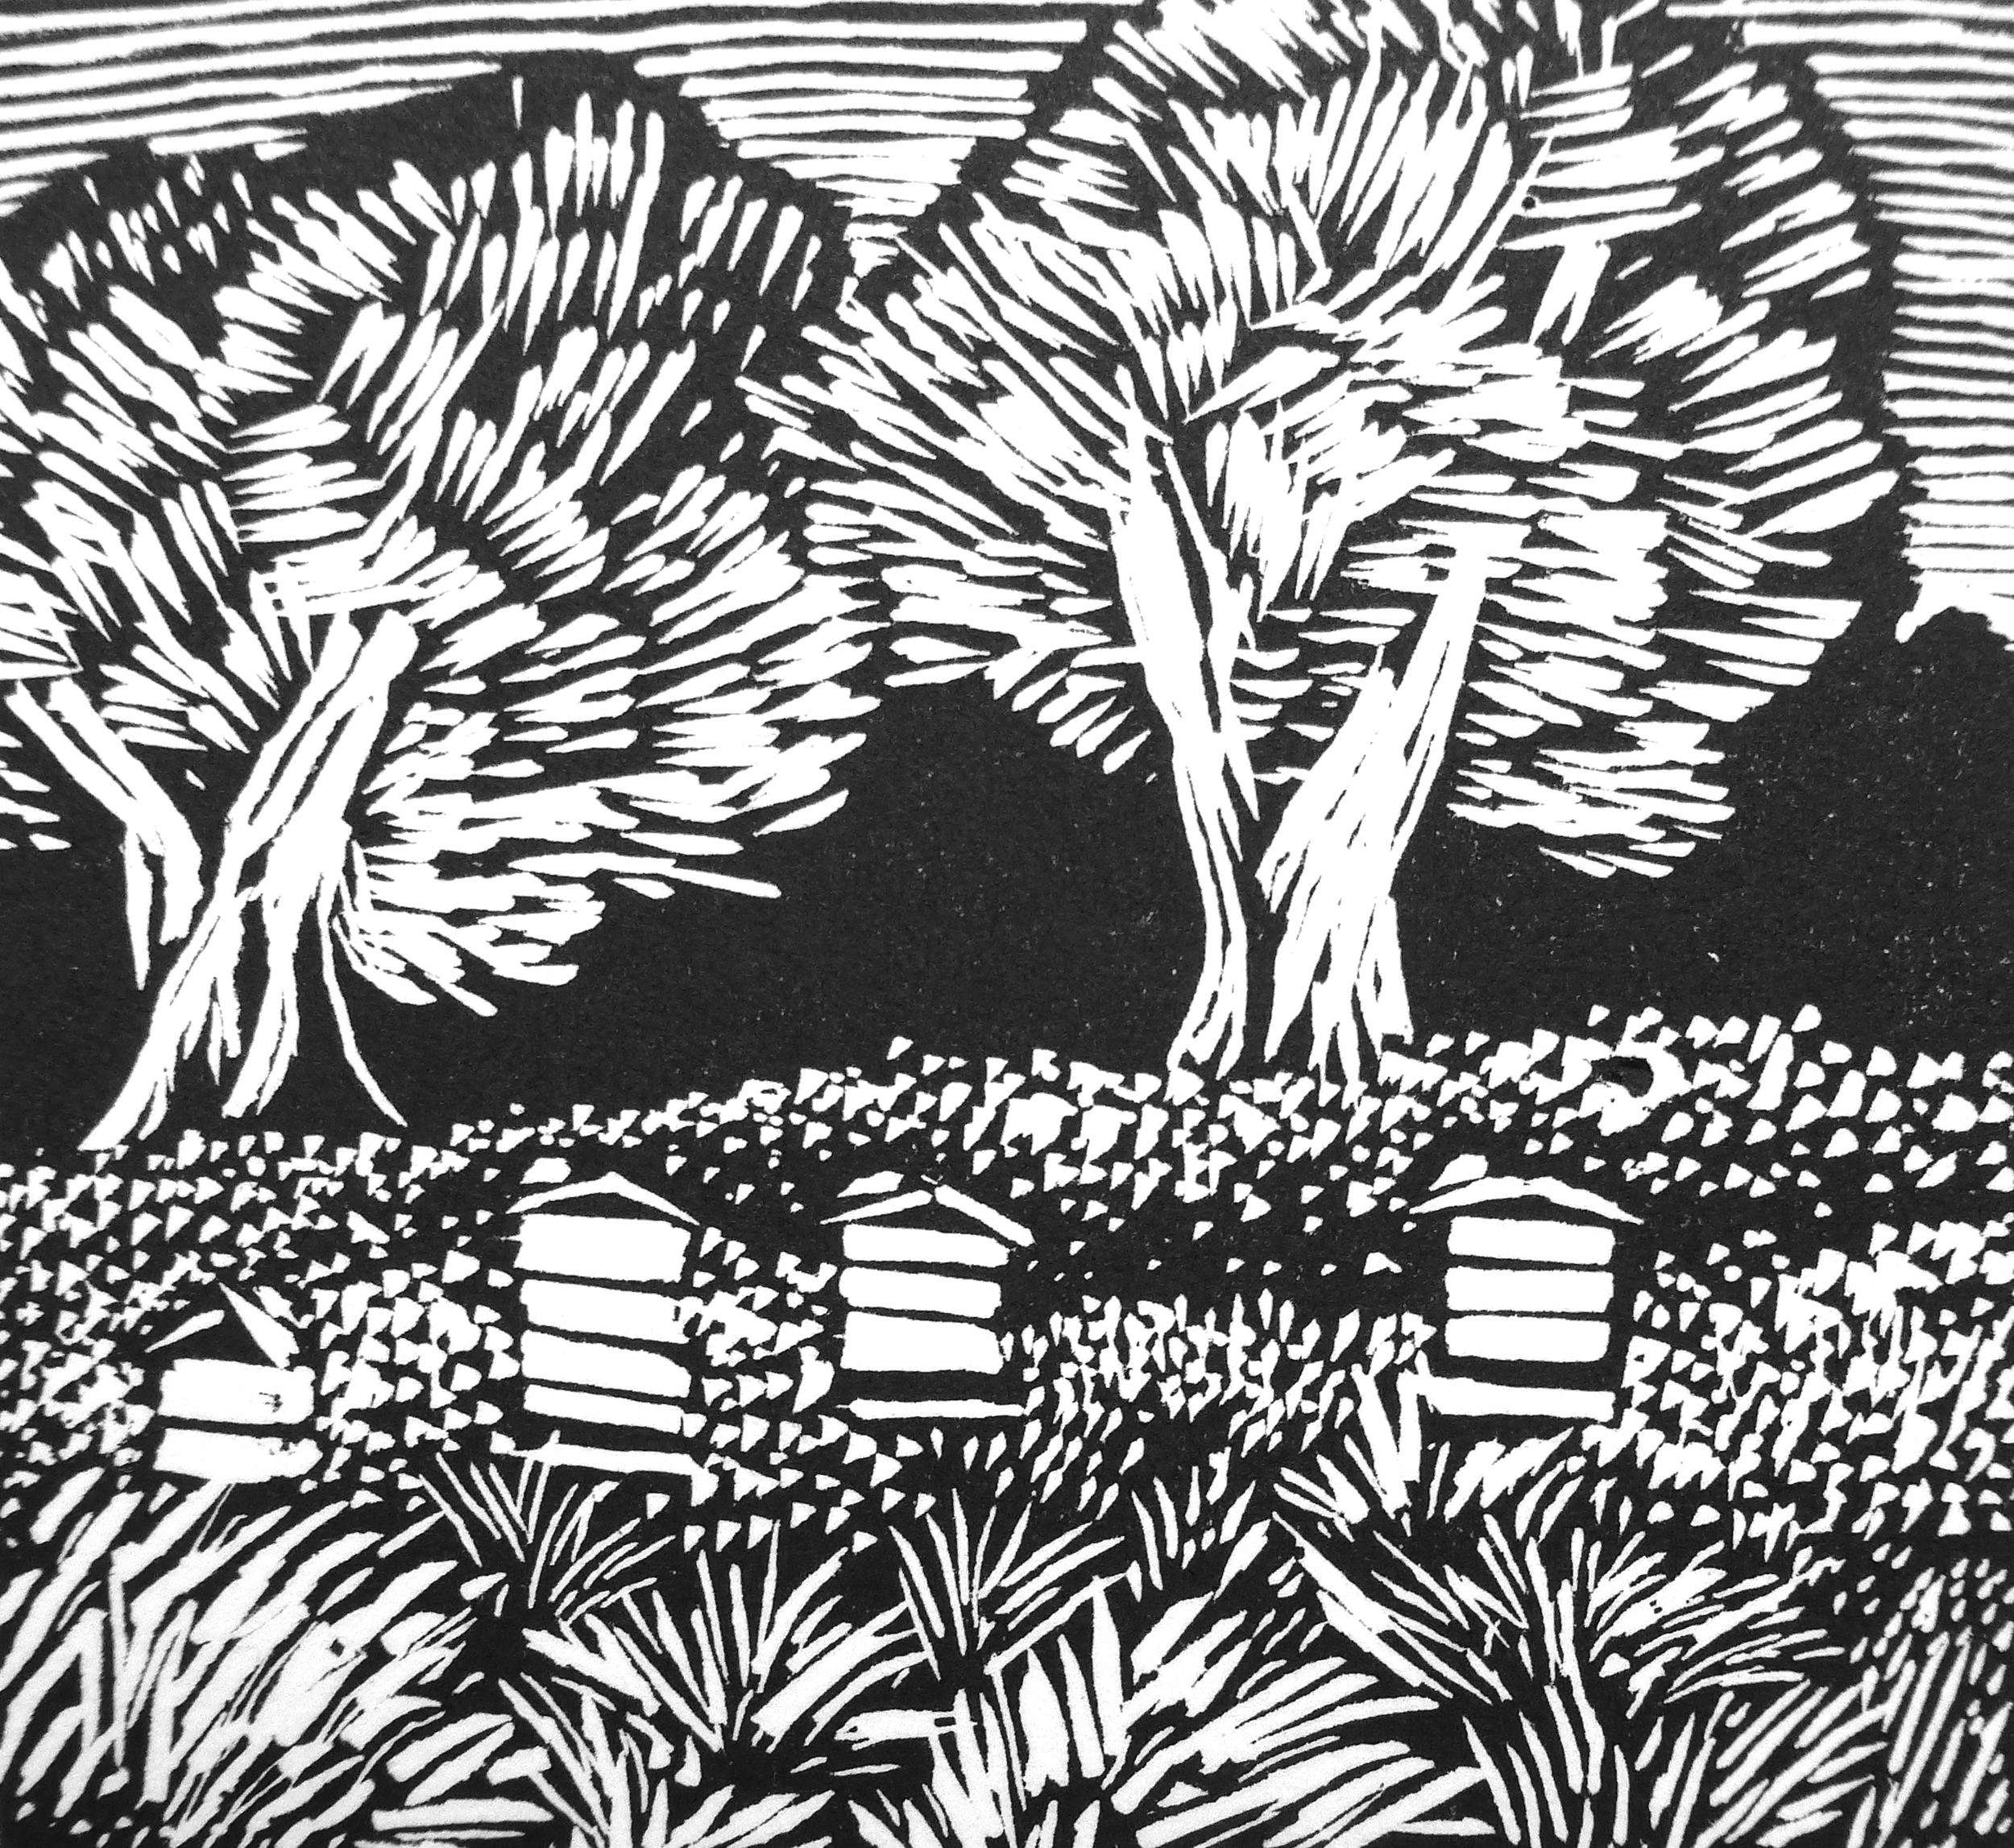 Beehives at Hidcote   Engraving, 2014  Edition of 4  Image size: 6.5 cm x 7 cm  Paper size: 20 cm x 15 cm  SOLD OUT